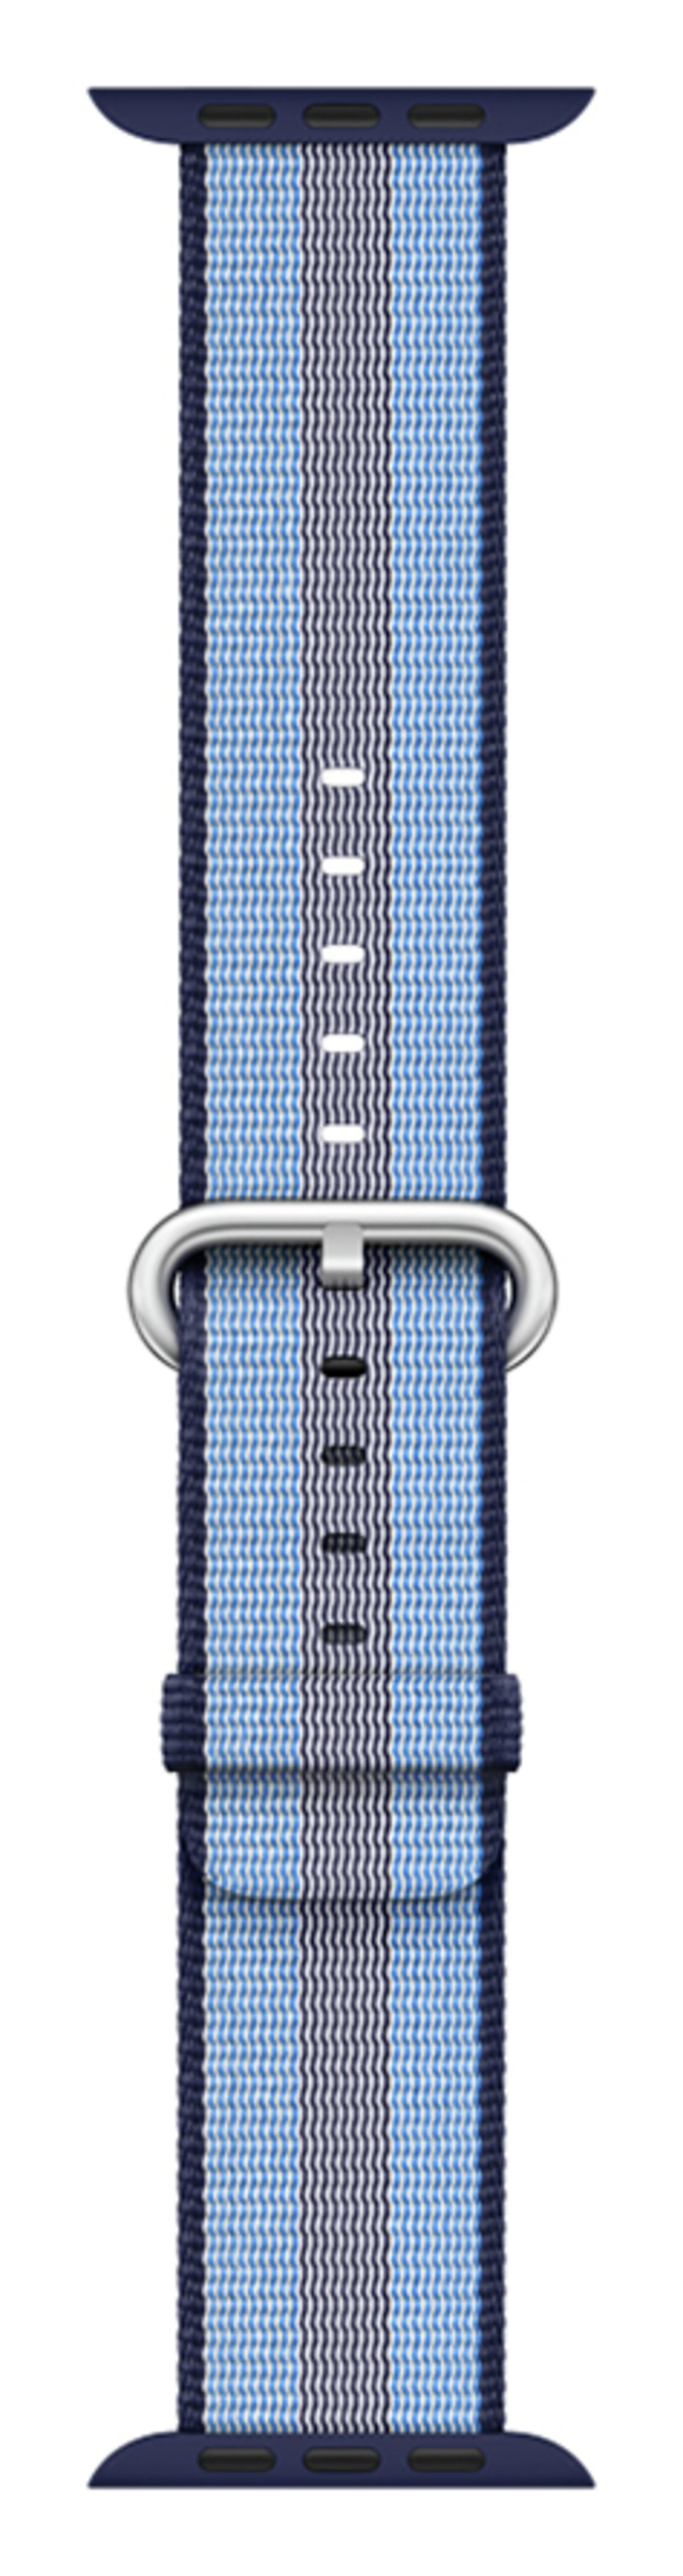 Apple Watch S3 38mm Midnight Blue Check Woven Nylon Band cheapest retail price